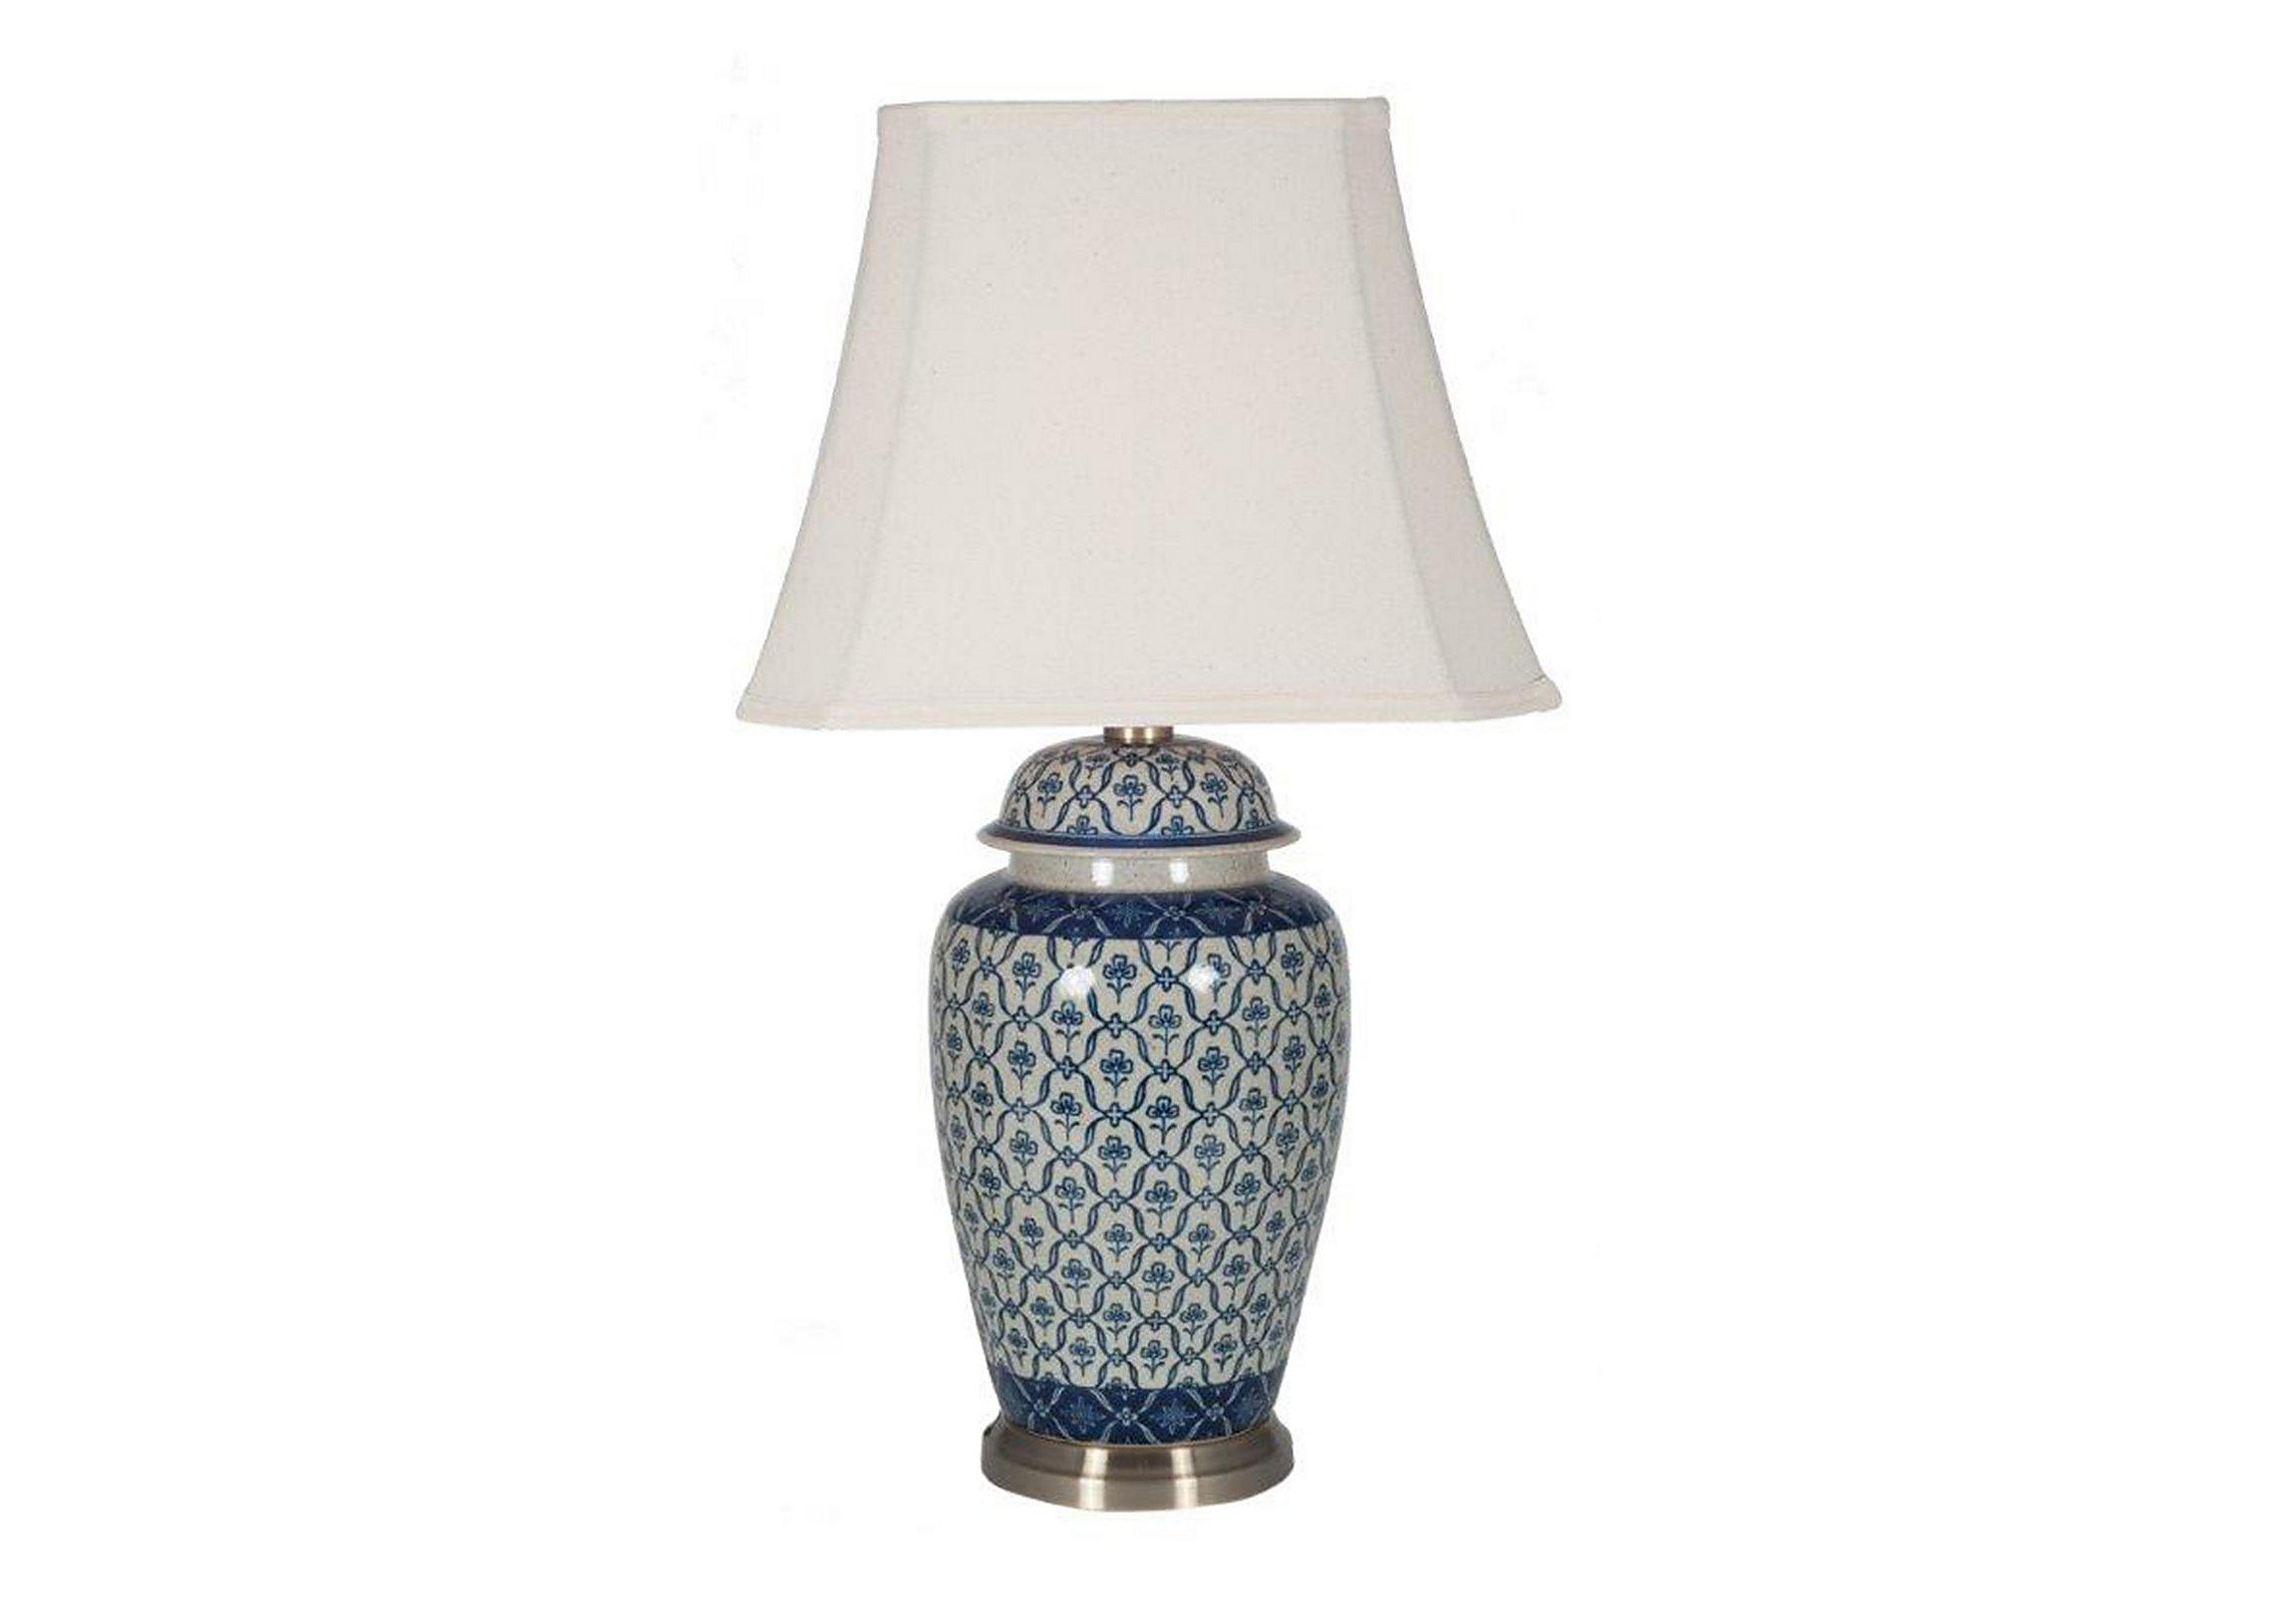 Porcelain ginger jar table lamp furniture village porcelain ginger jar table lamp loading images geotapseo Gallery